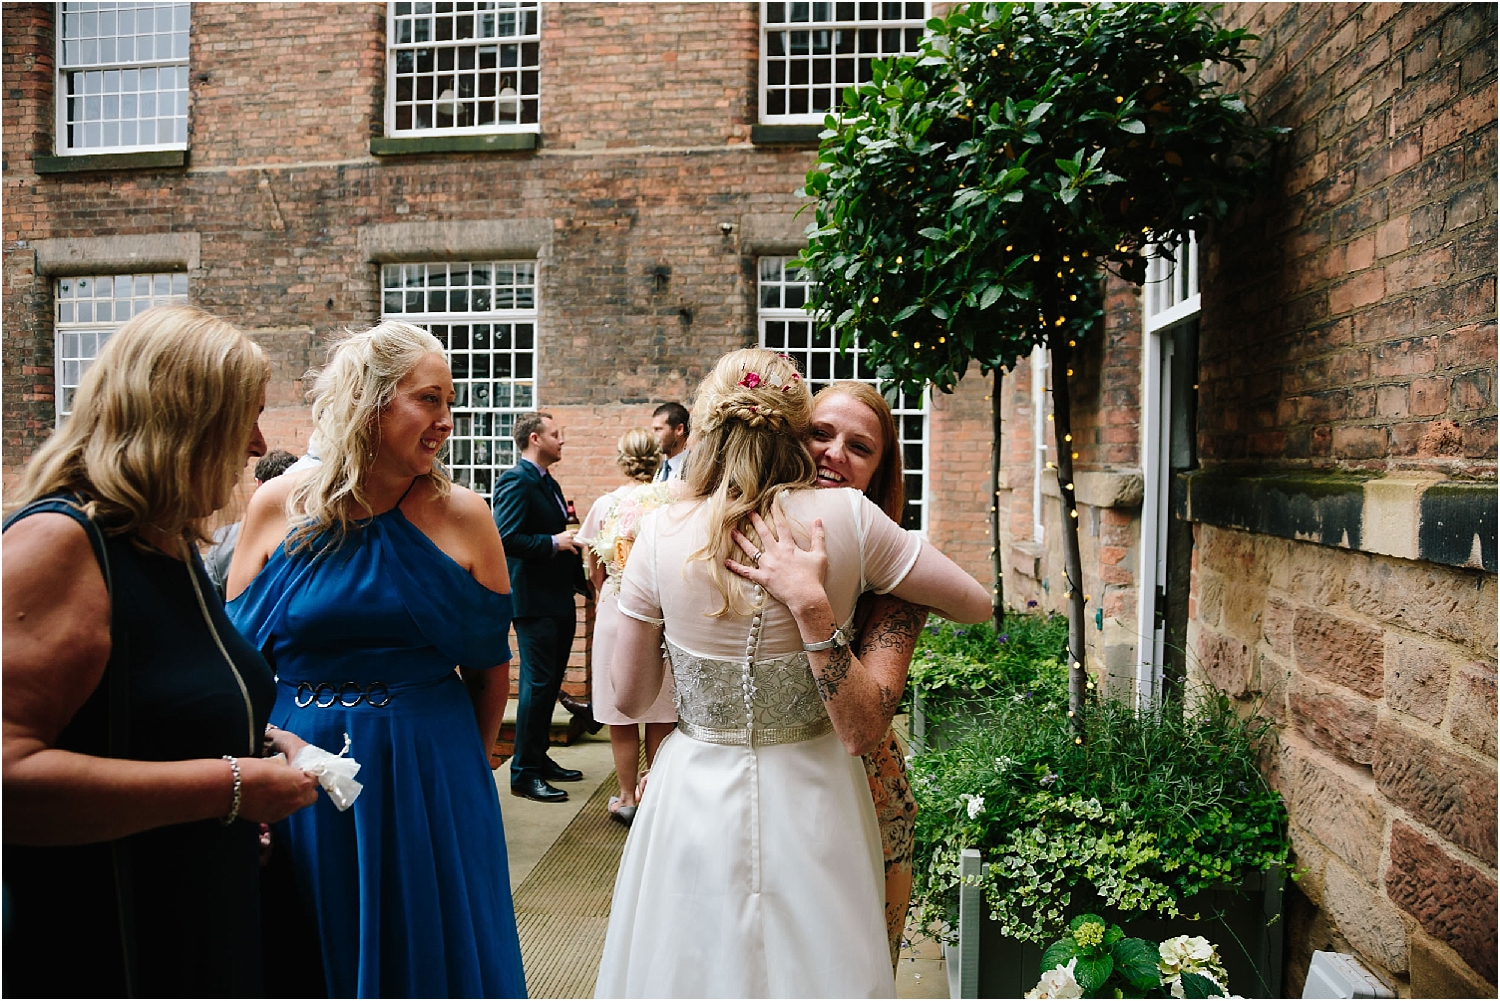 Wedding-west-mill-venue-professional-photographer-natural-documentary-nottingham-derby-280_BLOG.jpg